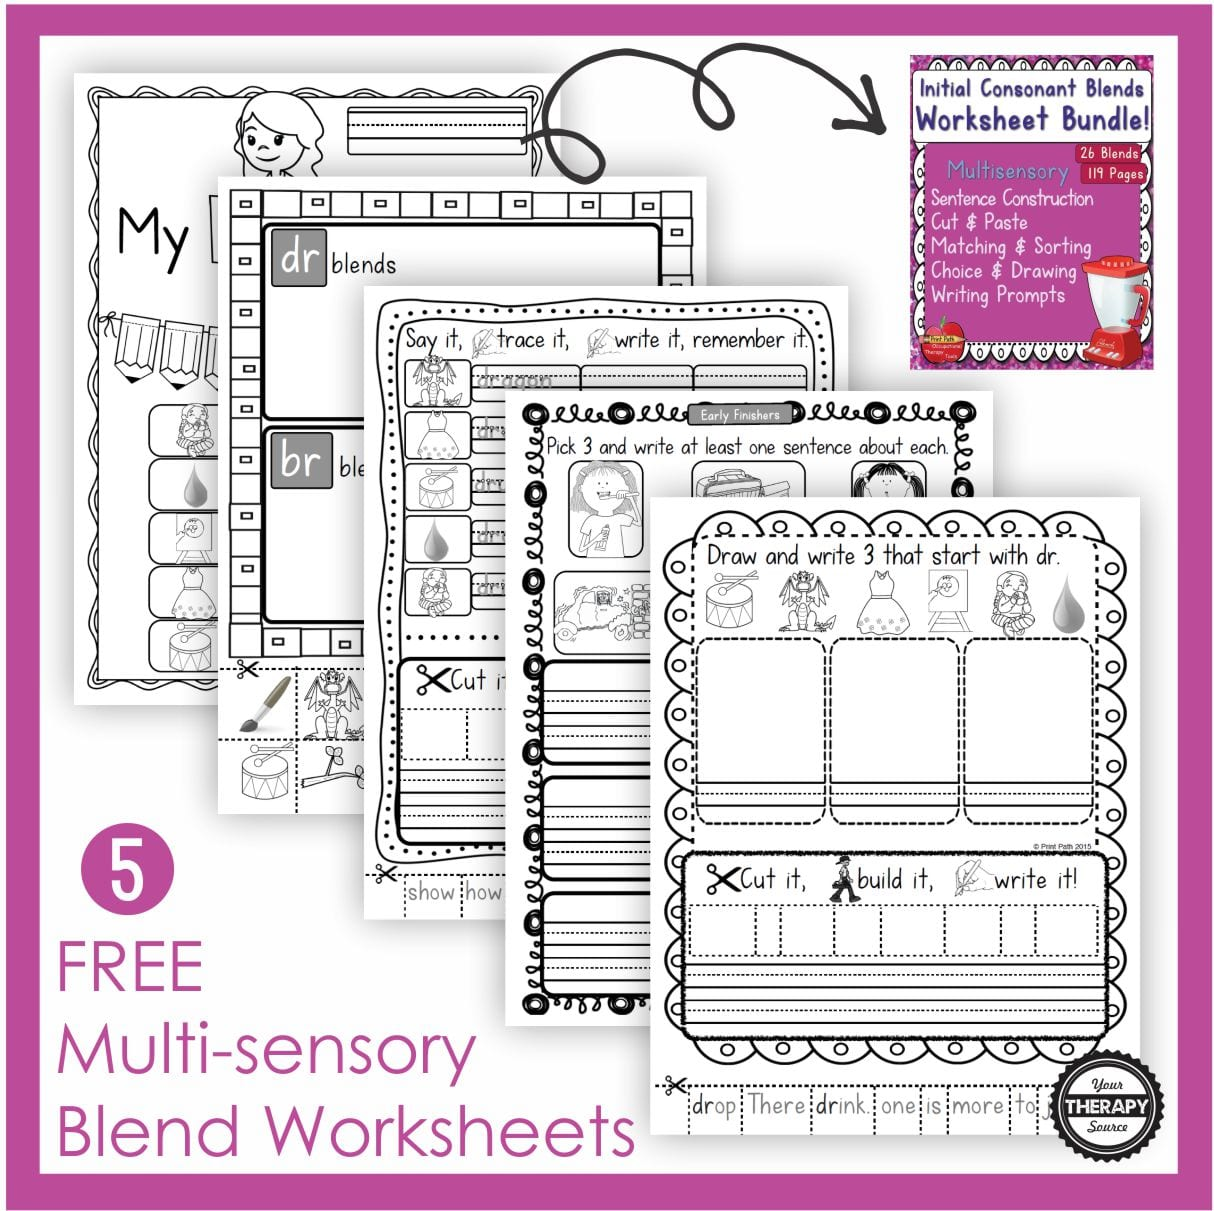 Students can practice scissor skills, pasting, drawing, handwriting, and sentence structure to learn new blends with these 5 free blends worksheets.